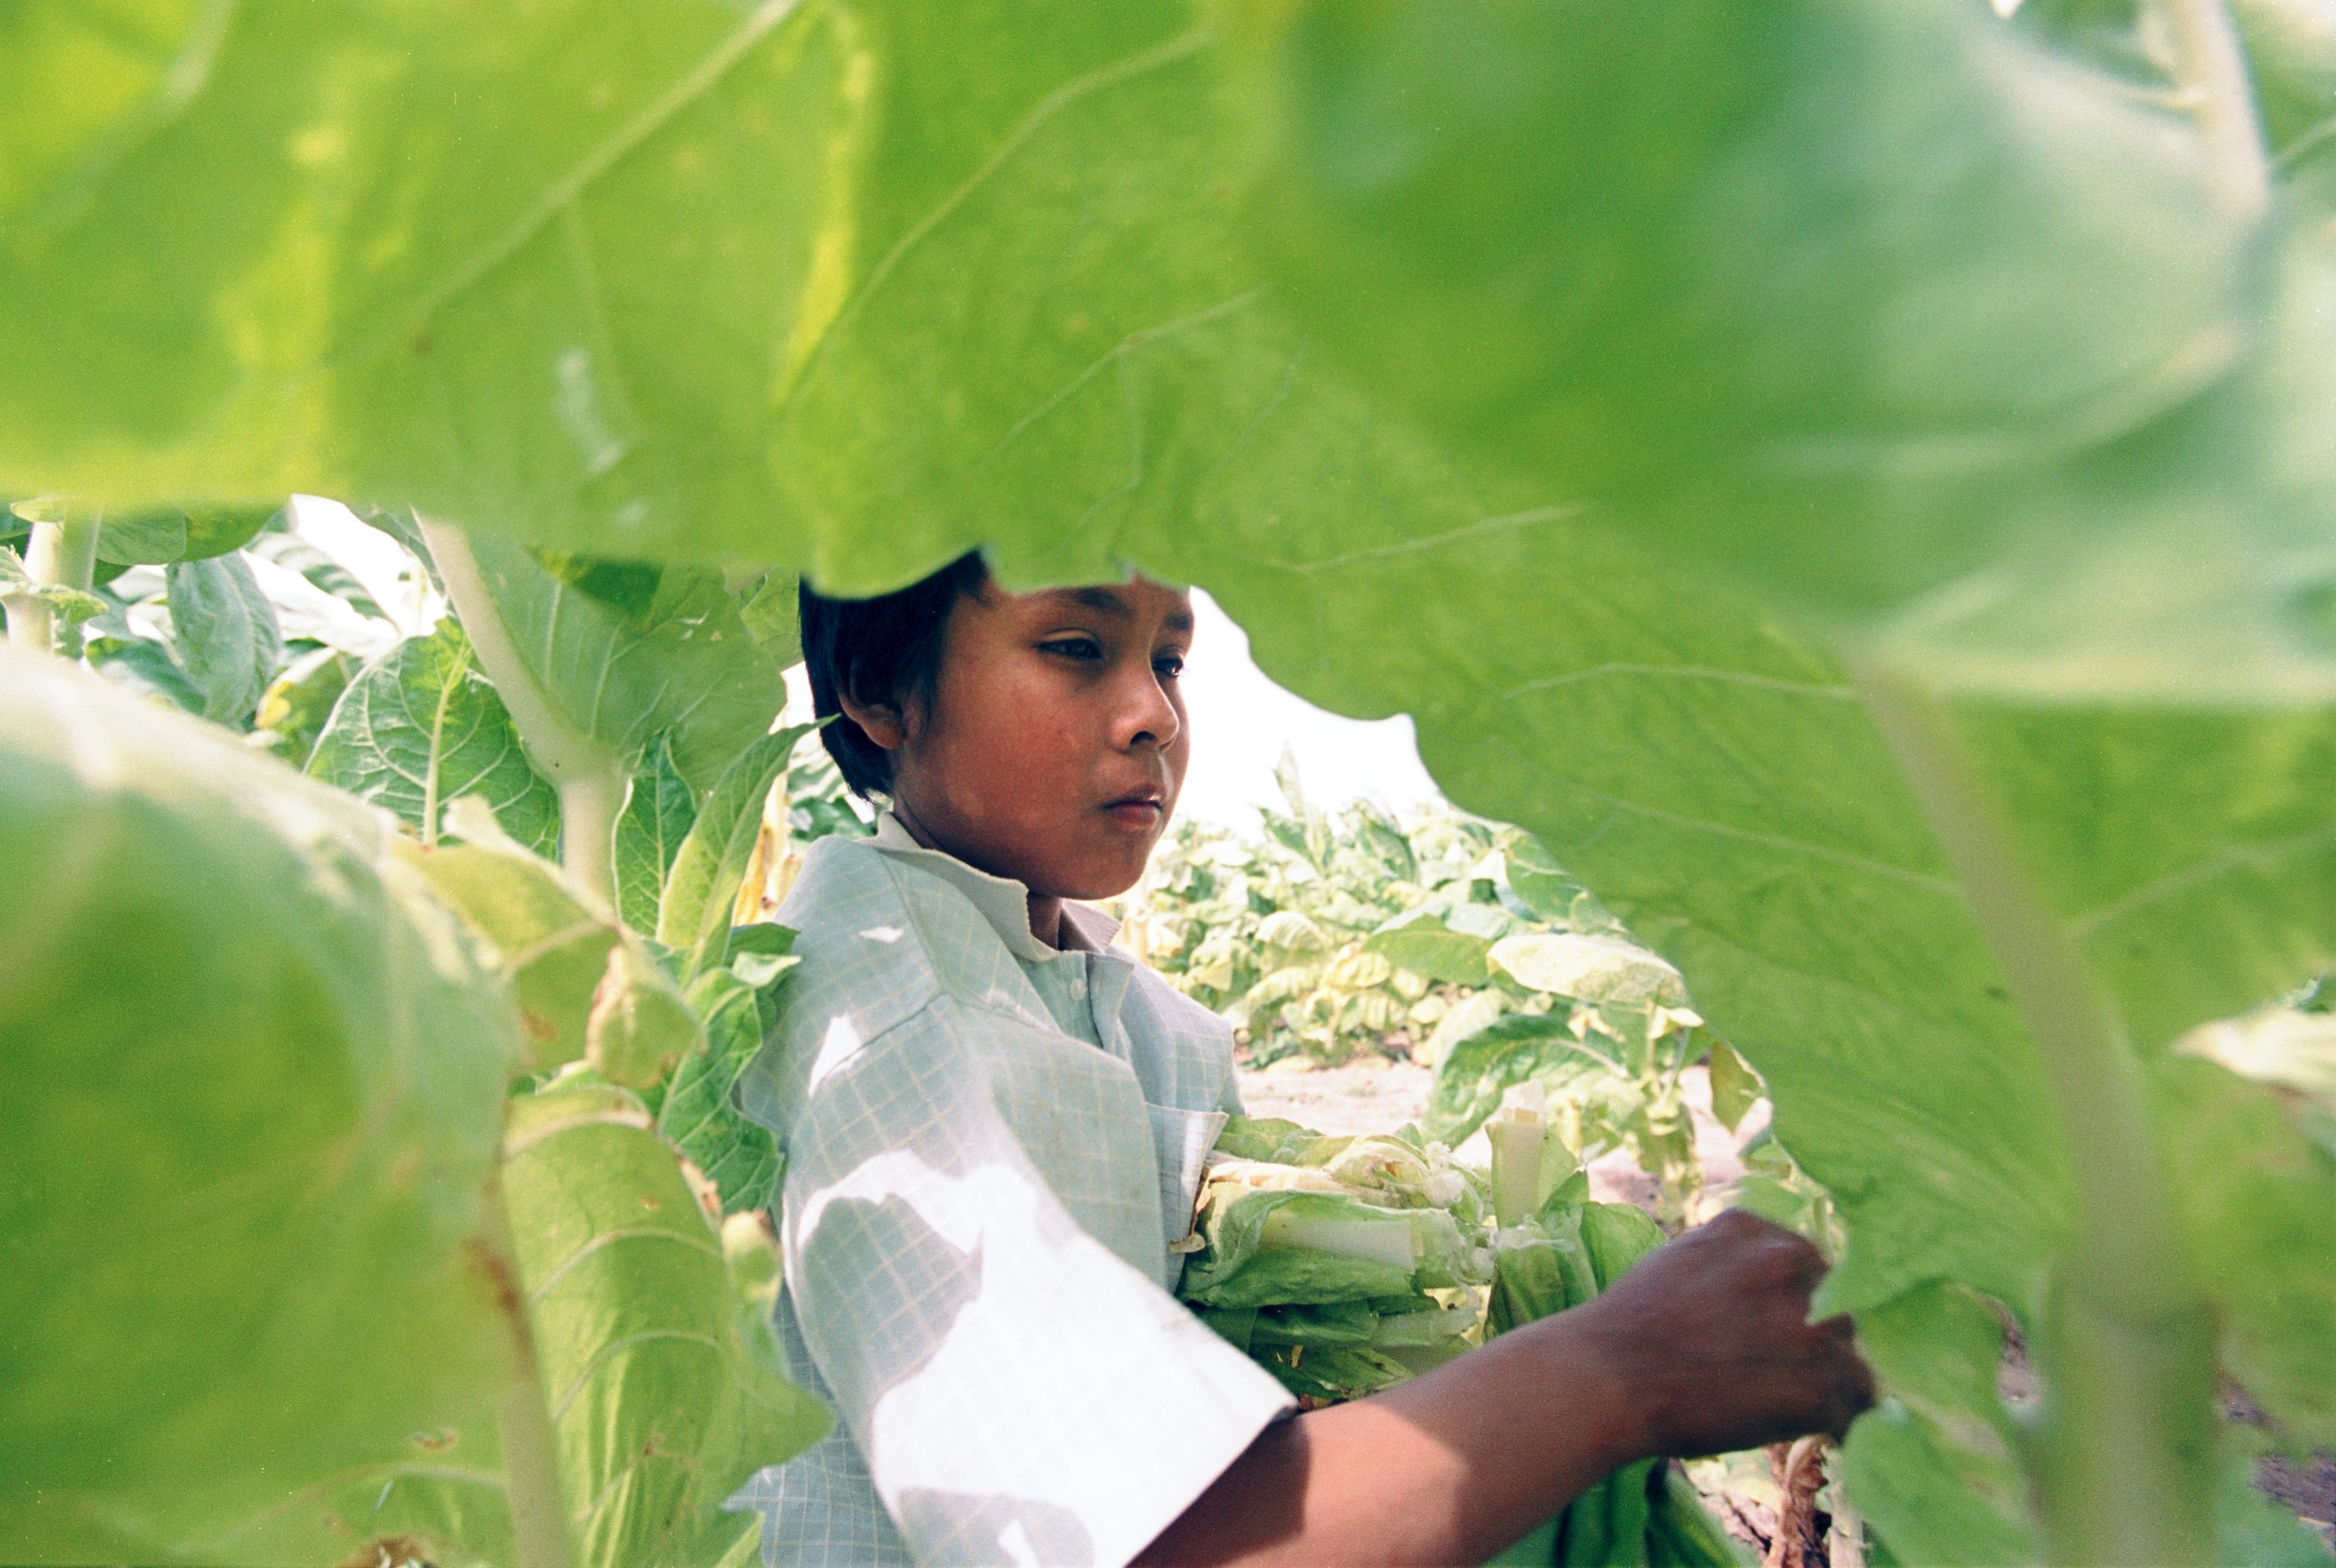 Boy Picking Tobacco (Nayarit- Mexico)